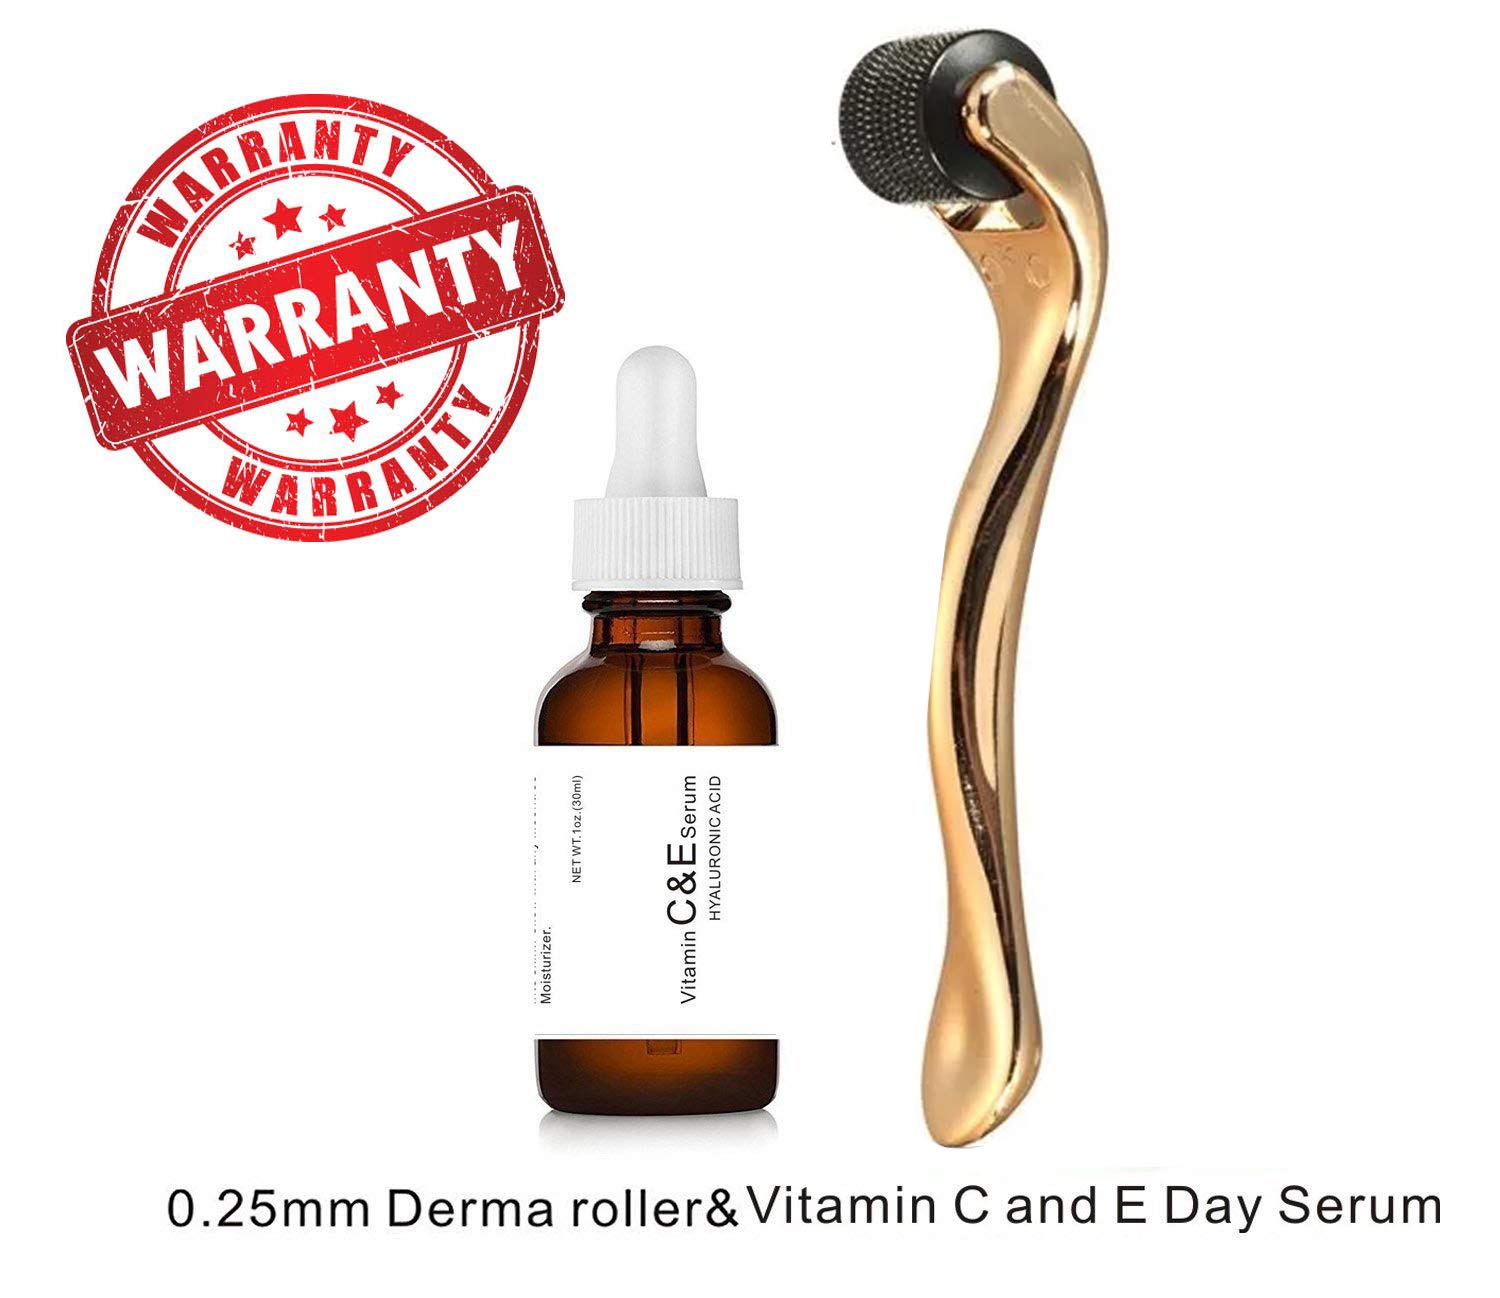 Sweet Dream Vitamin C and E Day Serum with Hyaluronic Acid,Anti aging skin care product/anti wrinkle serum will fill fine lines,even skin tone and fade age spots-plus 0.25mm derma roller by sweet dream